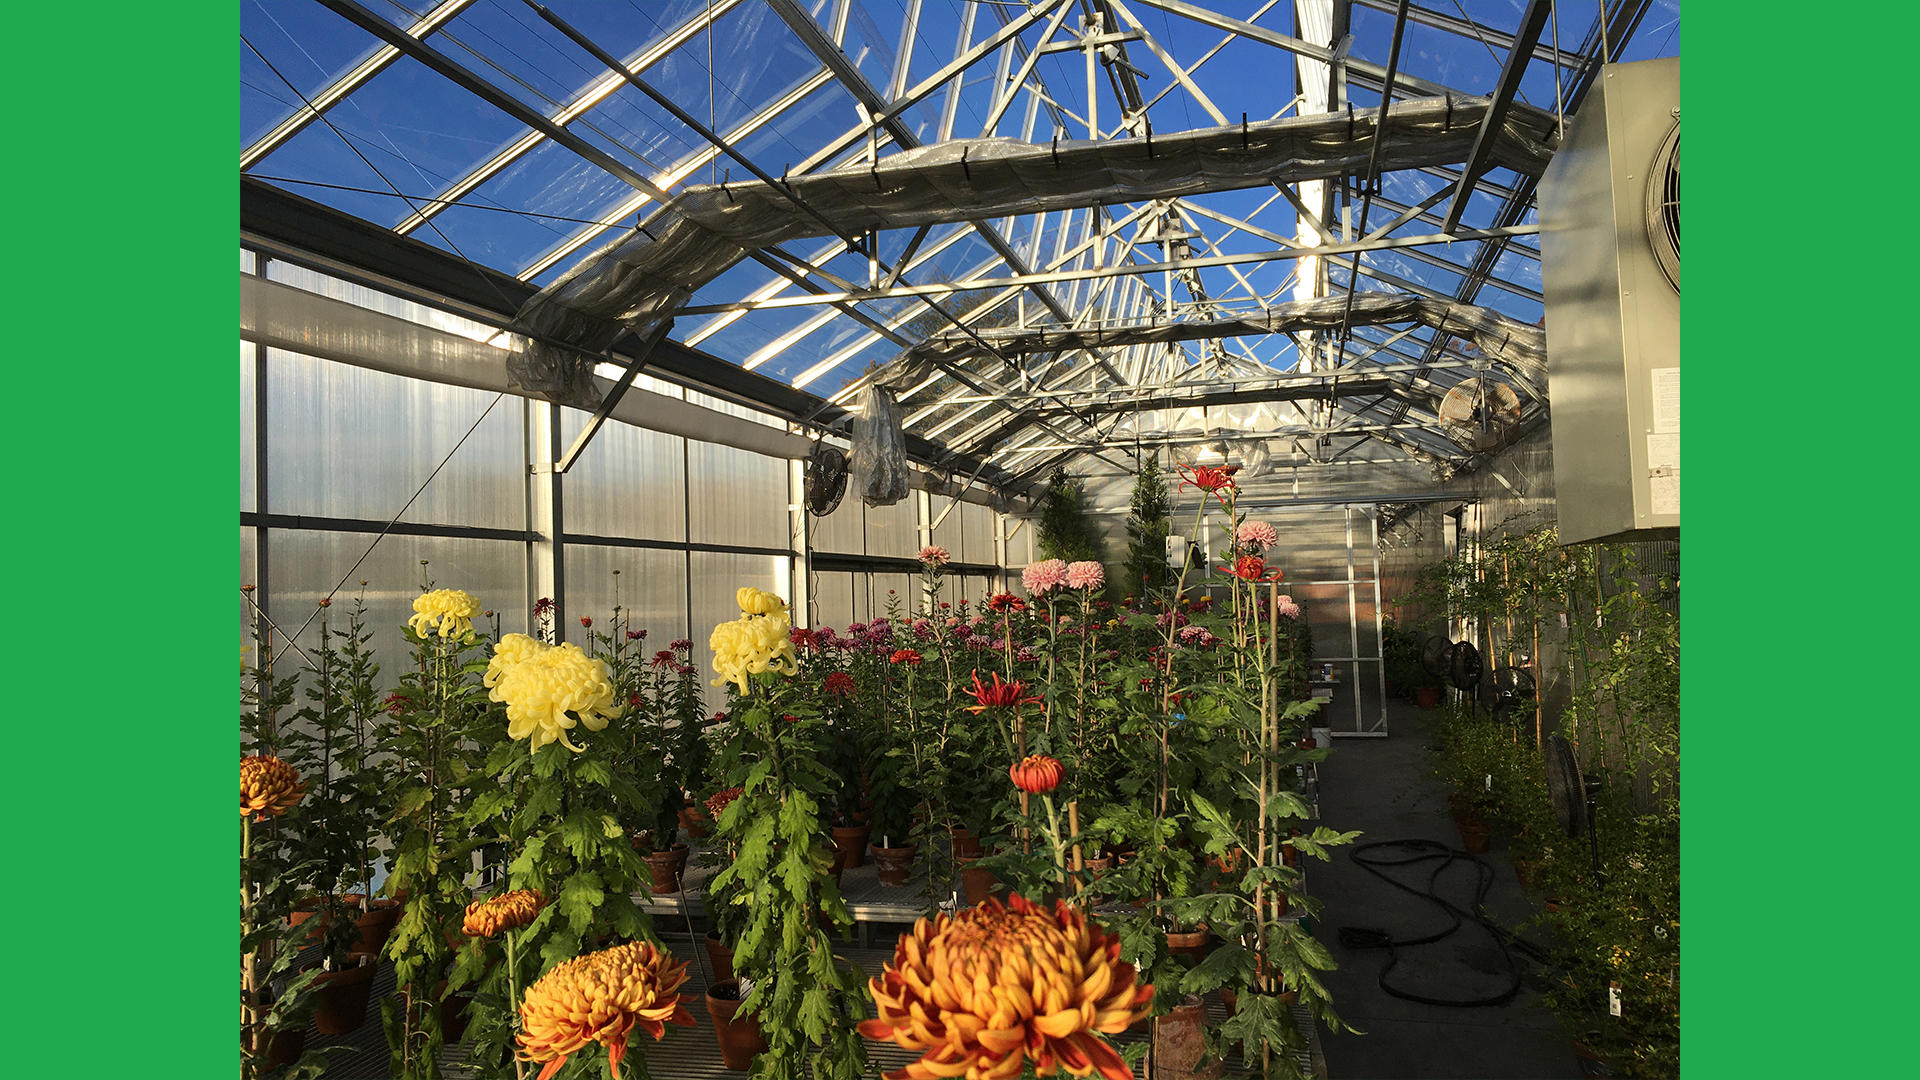 Another view of the Hingham Nursery greenhouses.